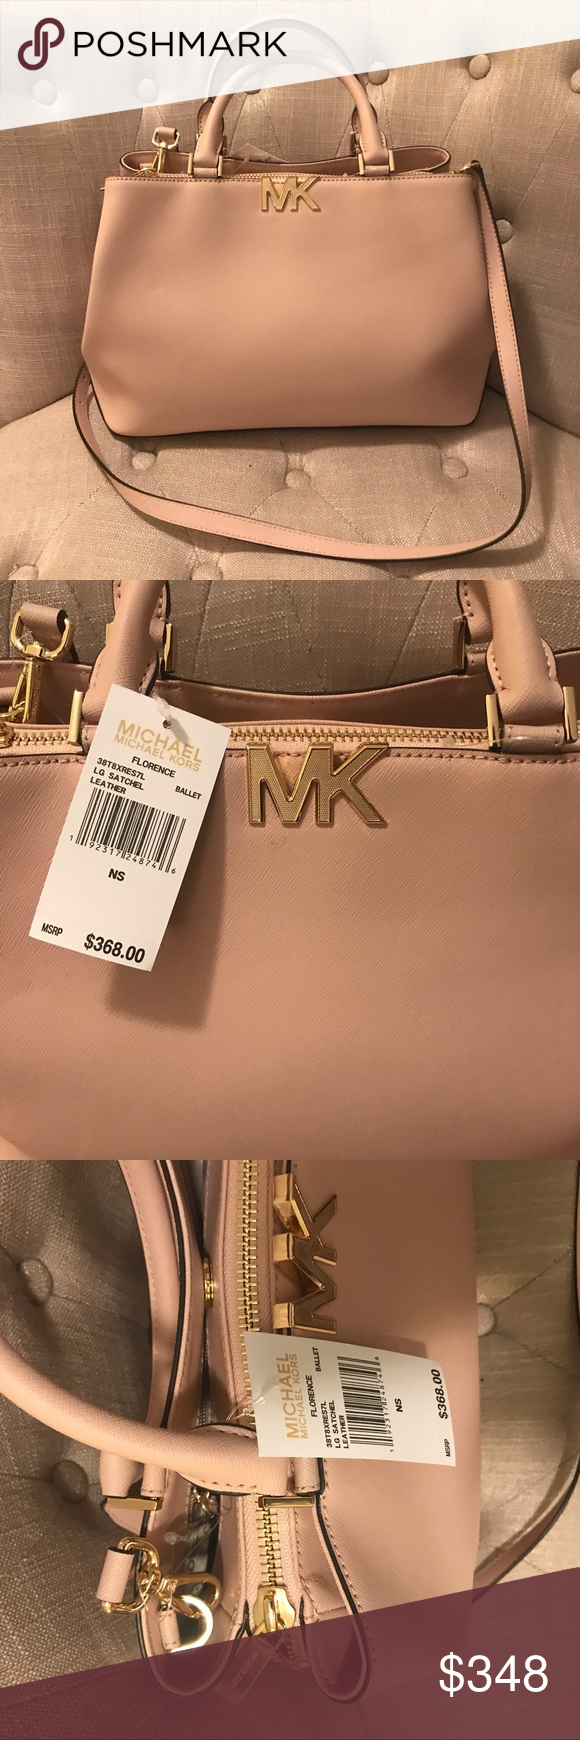 da4dc750f3a2 MICHAEL KORS: MK LOGO LARGE BALLET SATCHEL! The most delicate and  beautifully styled MK bag. Features: Branded gold feet and hardware Michael  Kors Bags ...